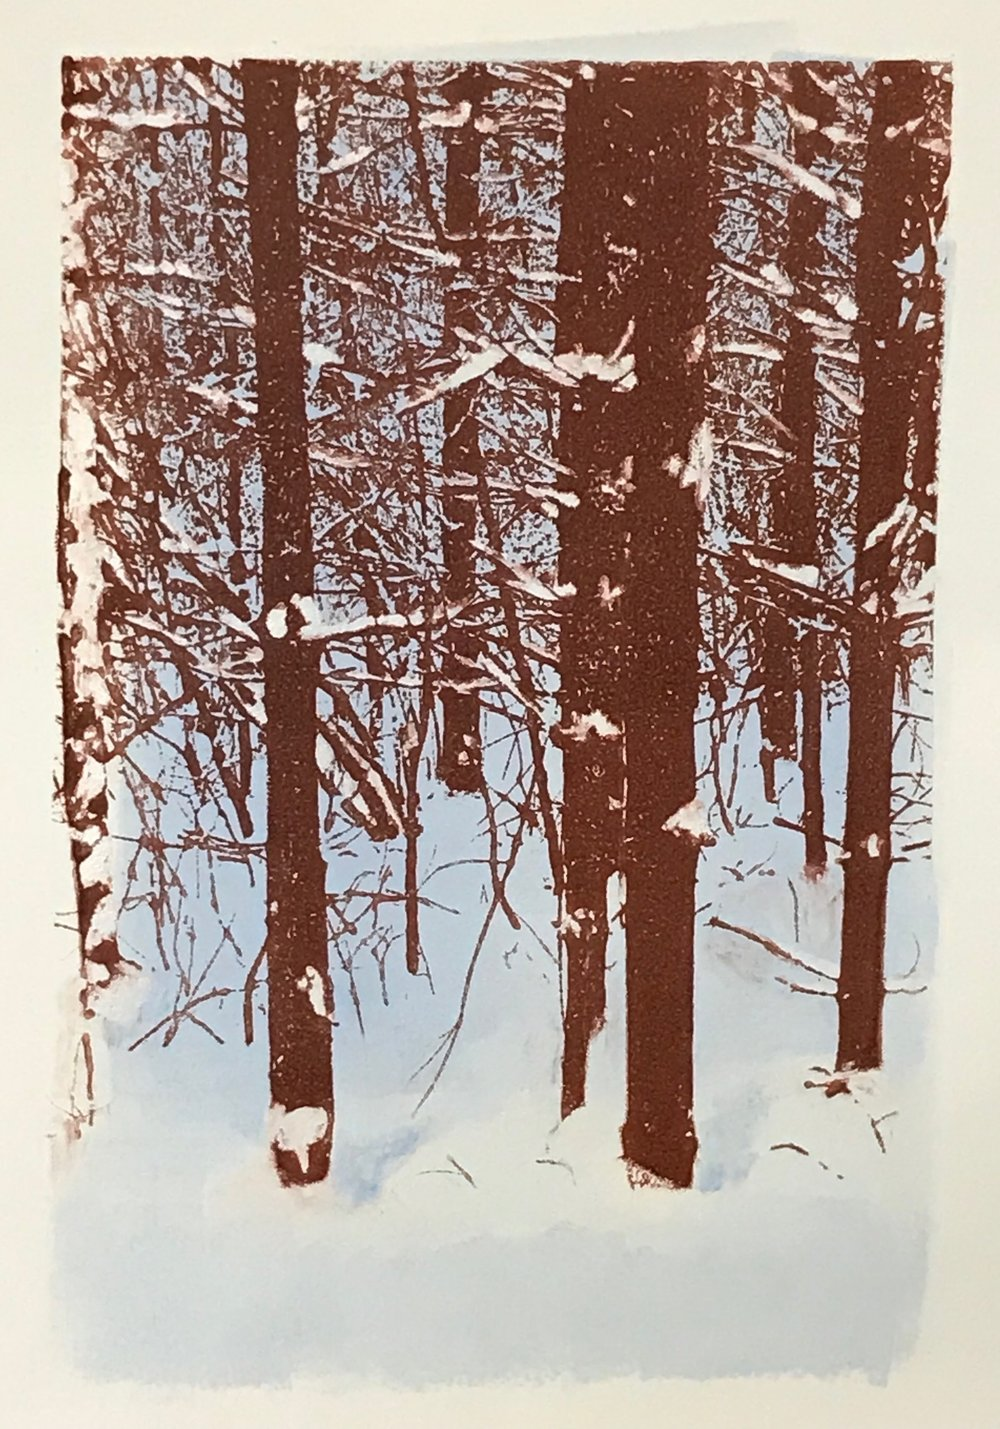 """Quiet Woods"", monoprint, 19.5"" x 14.75"", $300 (framed)"